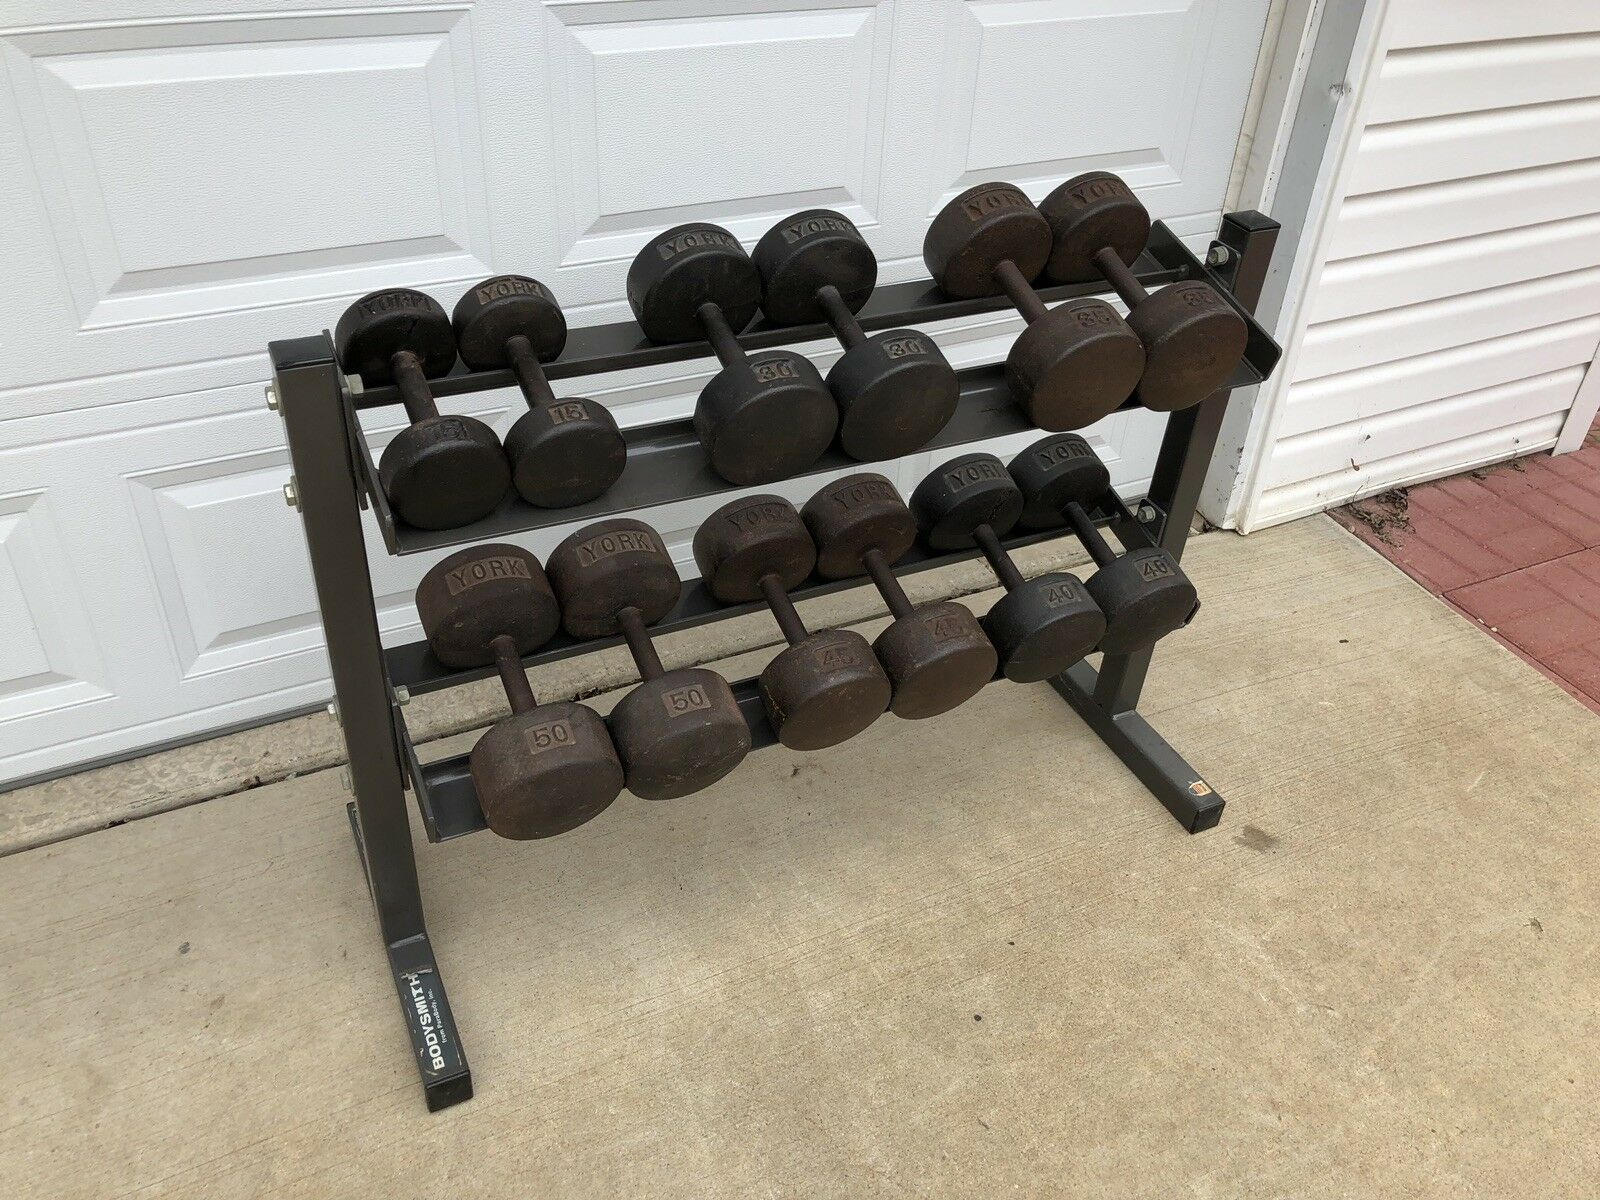 York Dumbbells - Gym Equipment - Vintage